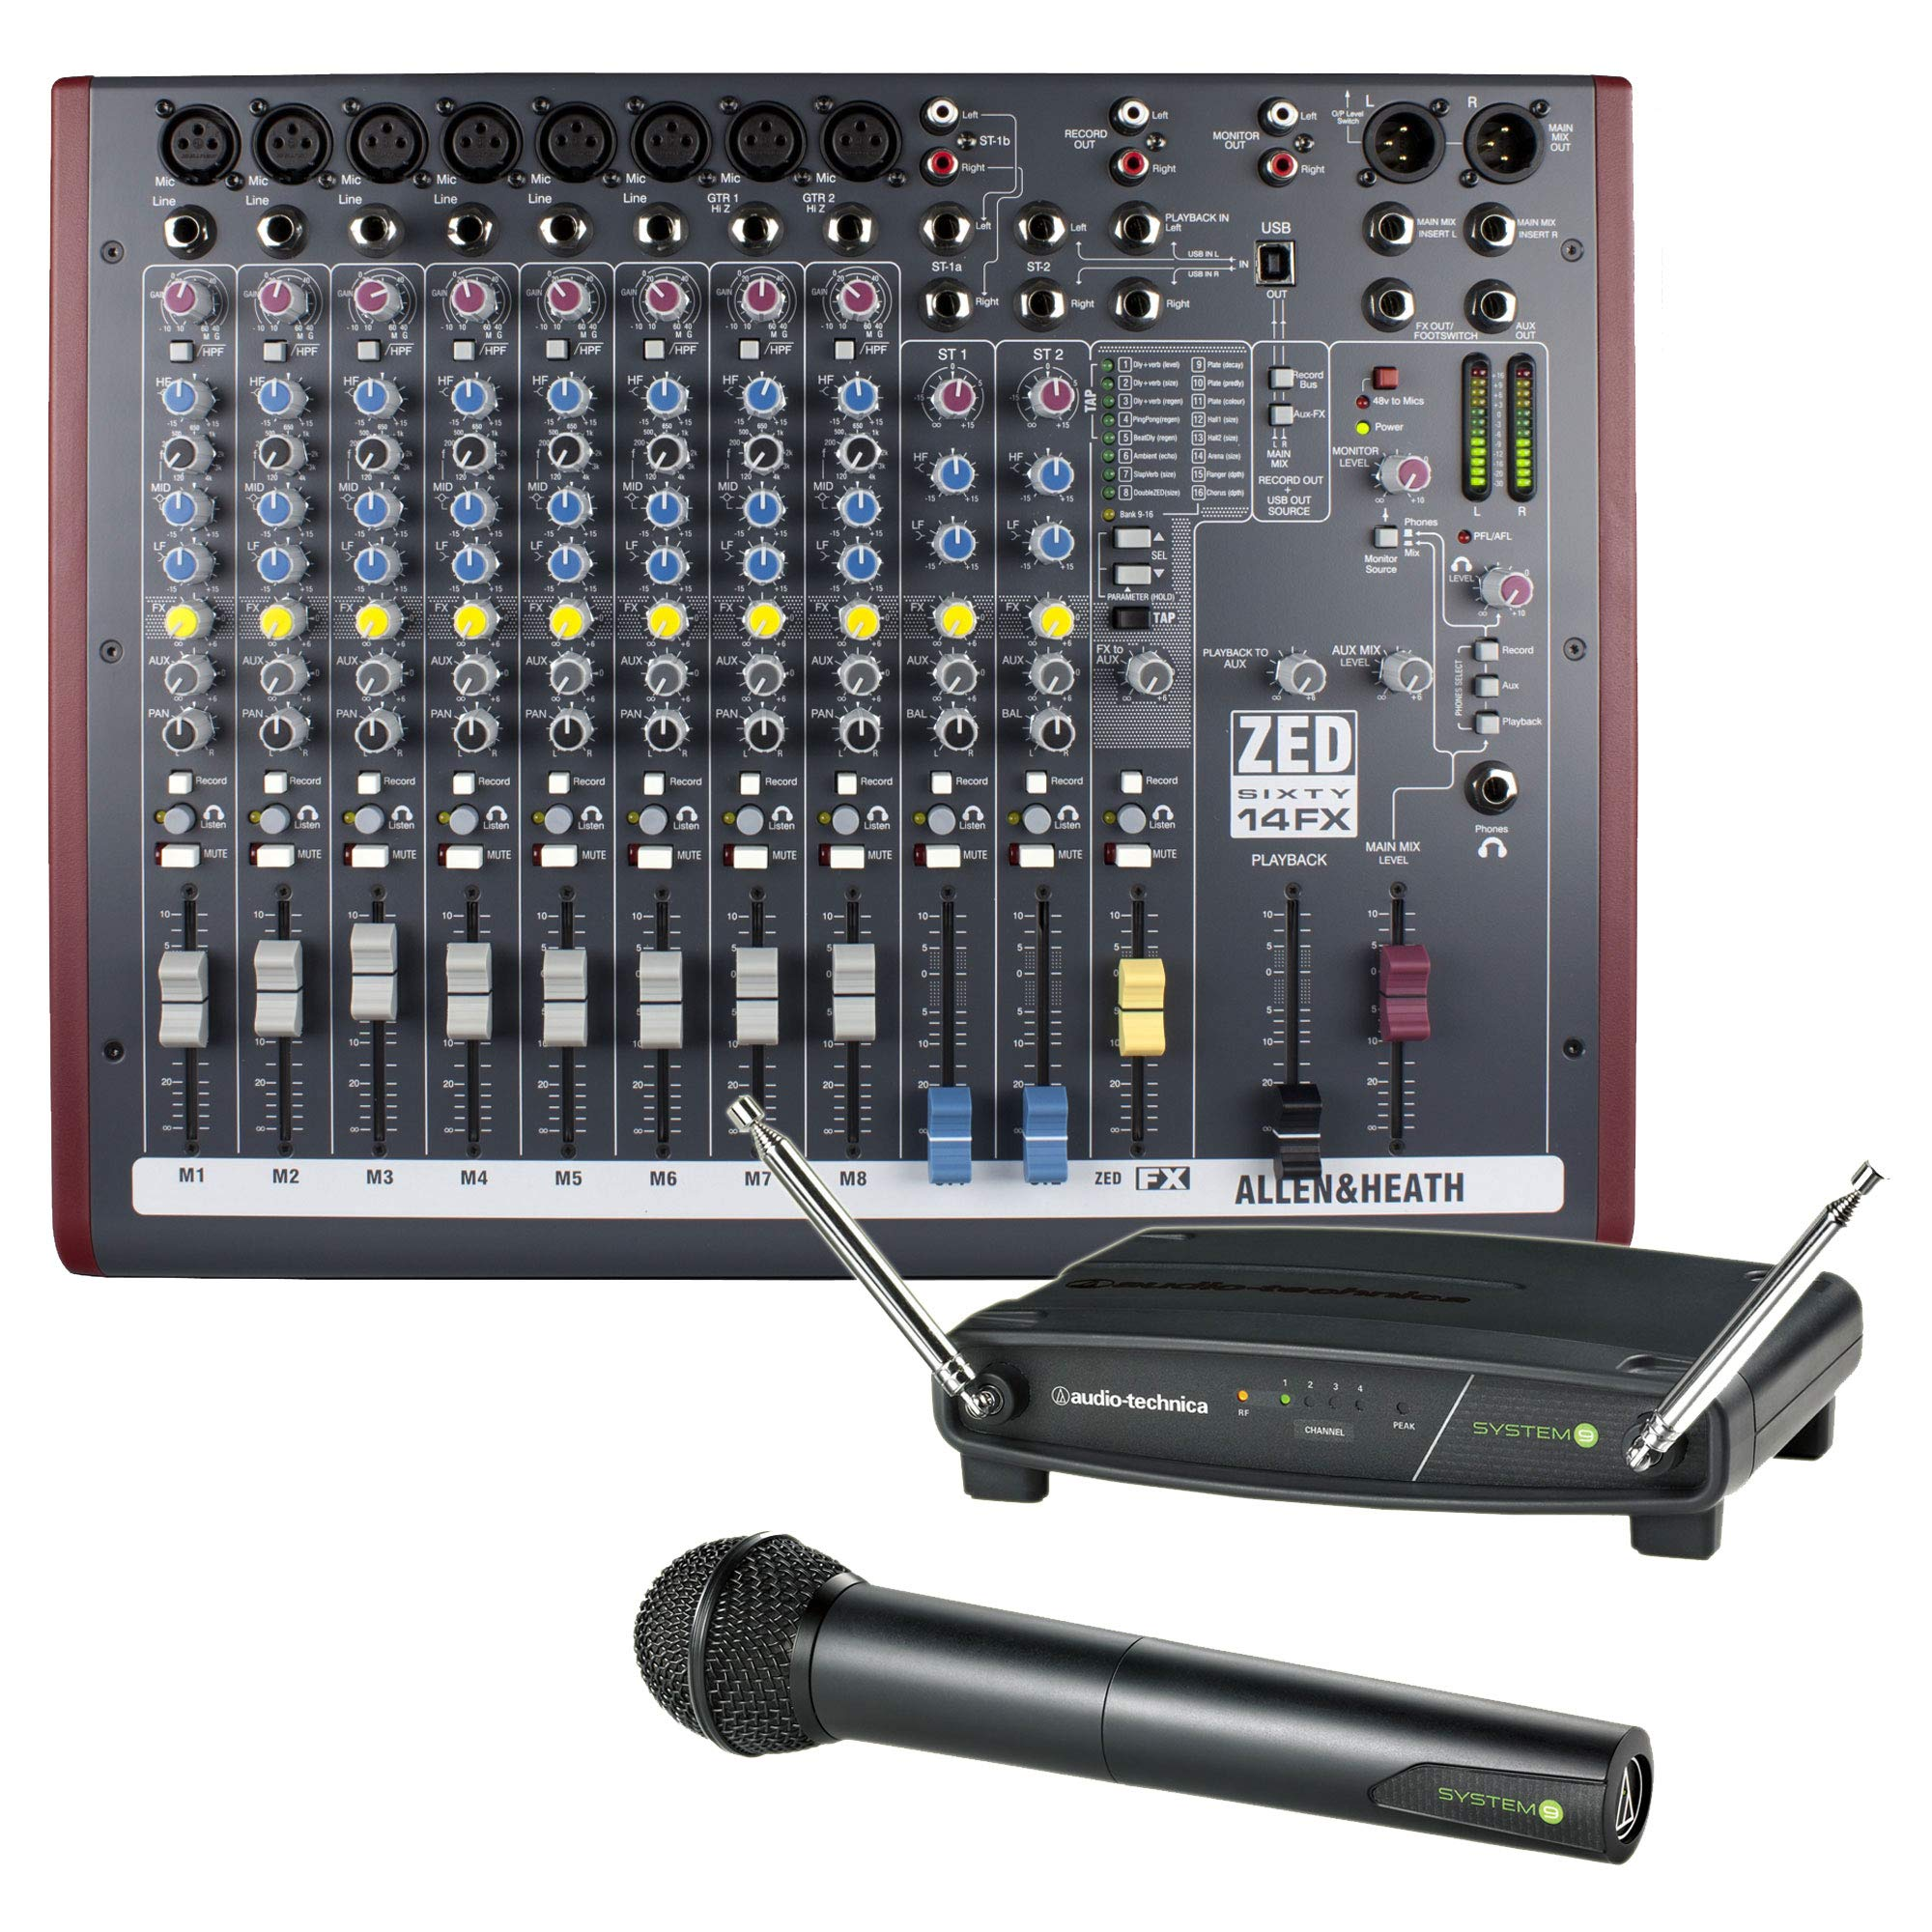 Allen & Heath ZED60-14FX Mixing Console Bundle with Wireless Microphone System